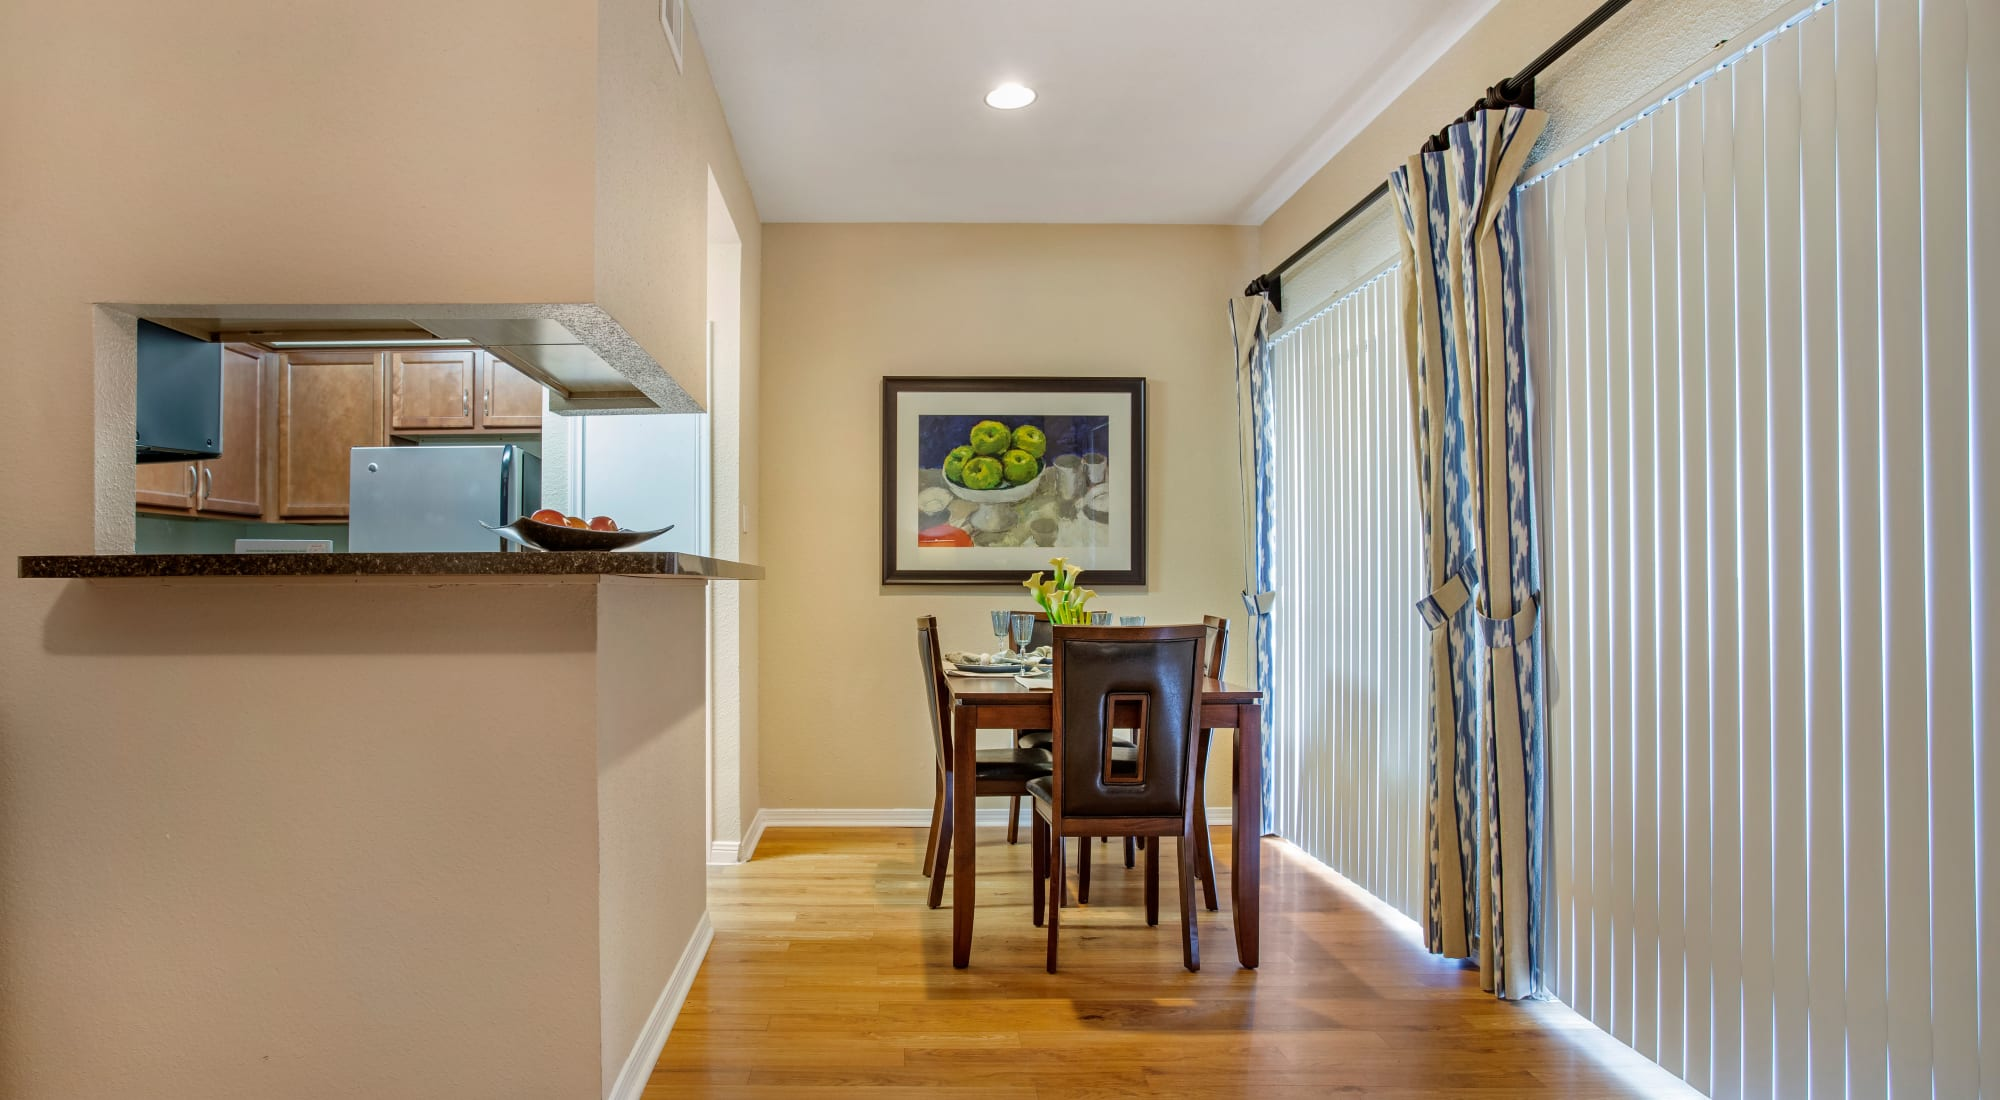 Floor plans at Foundations at River Crest & Lions Head in Sugar Land, Texas